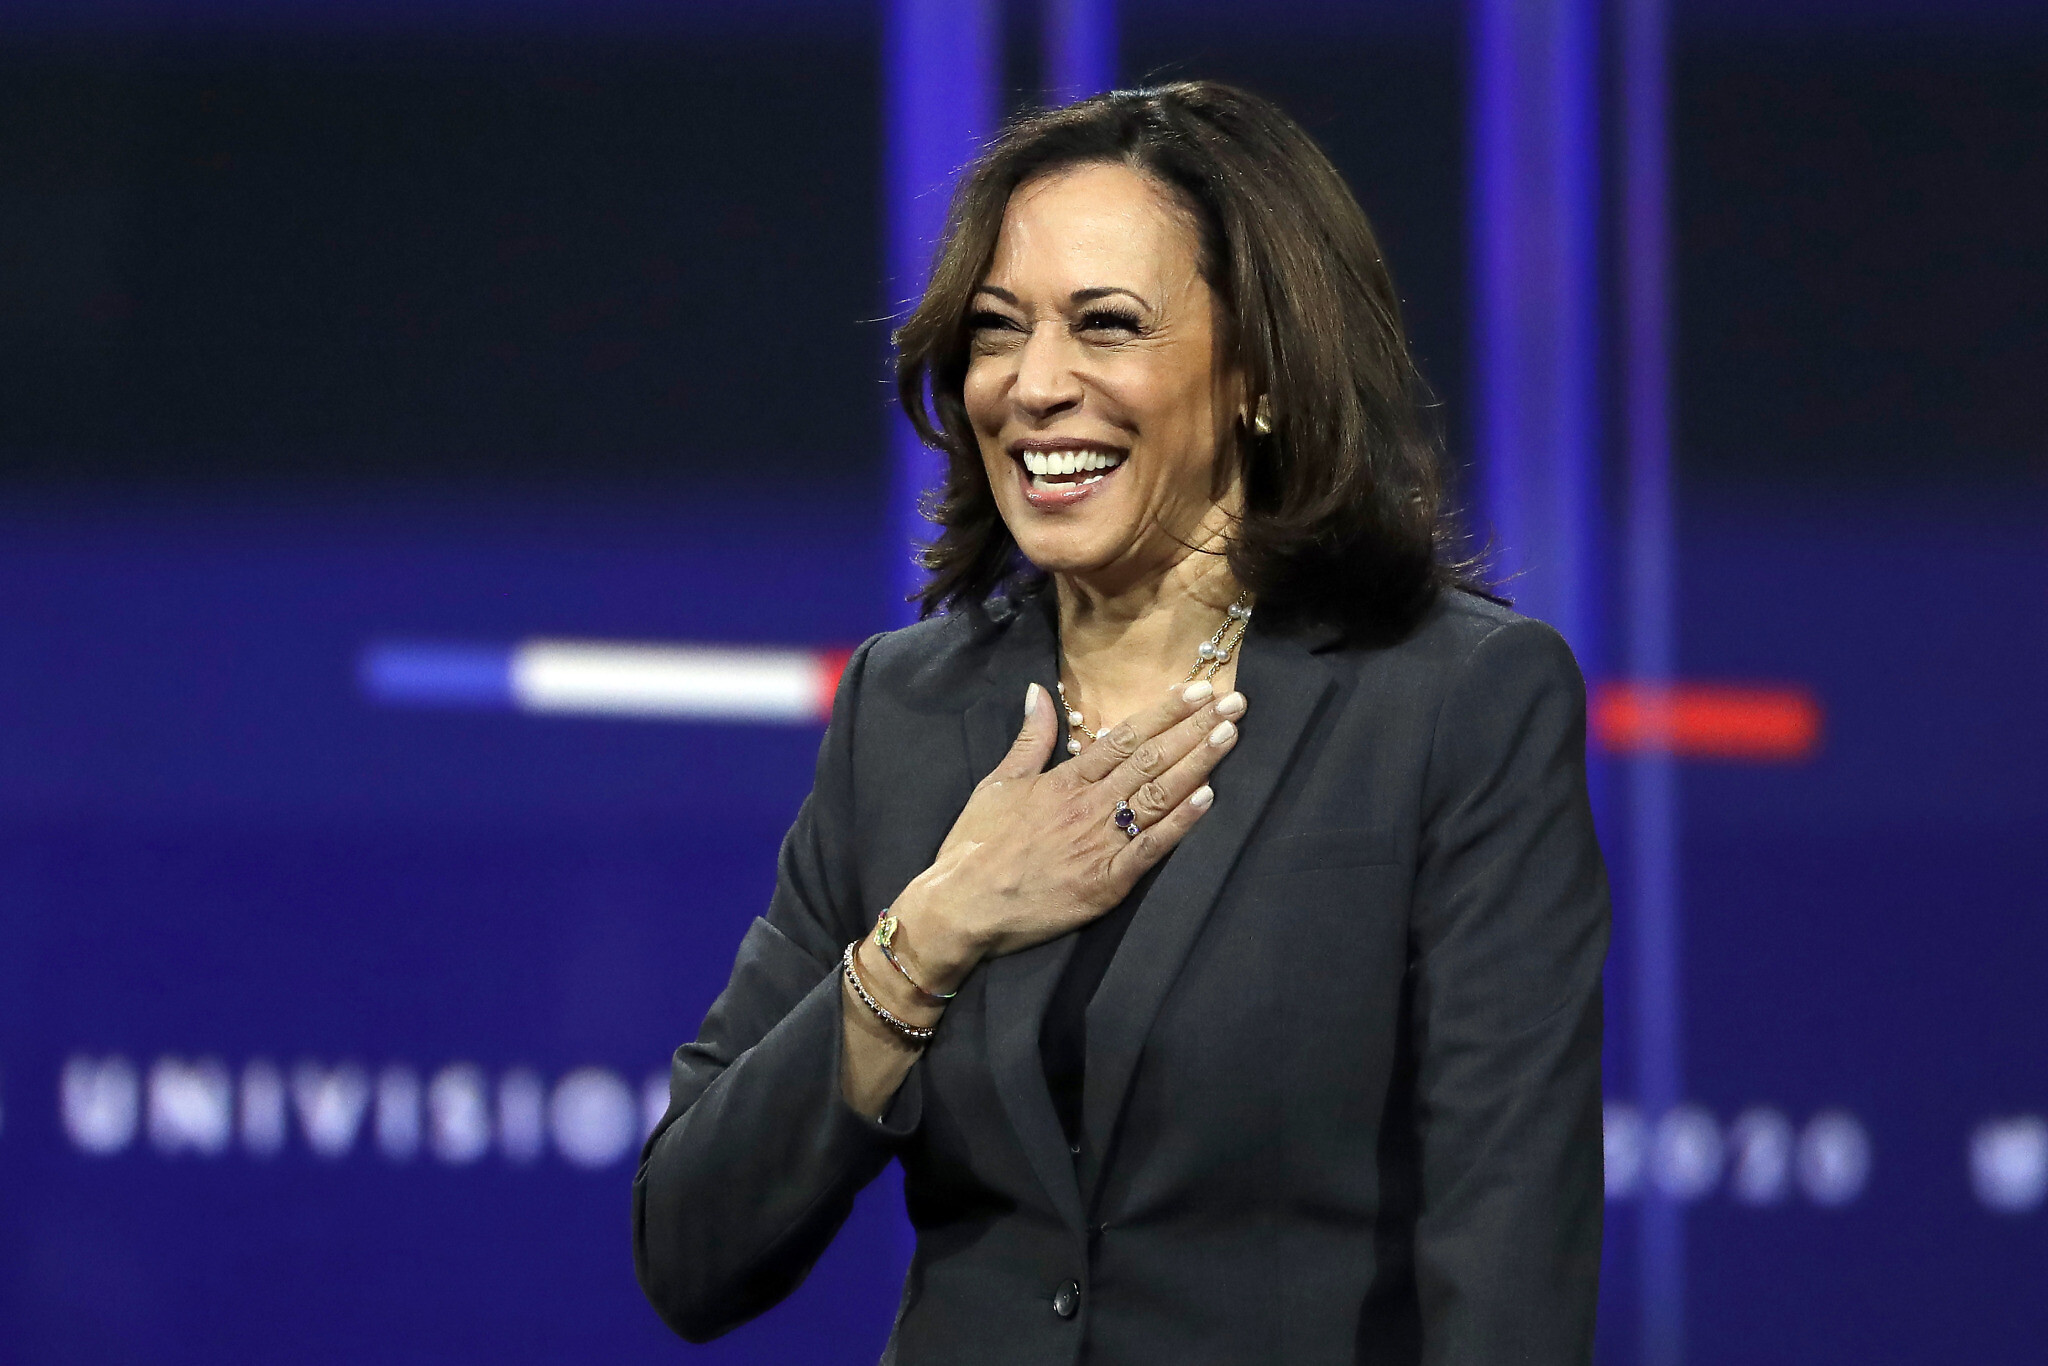 Vp Nod The Latest In A Career Of Firsts For Kamala Harris The Times Of Israel